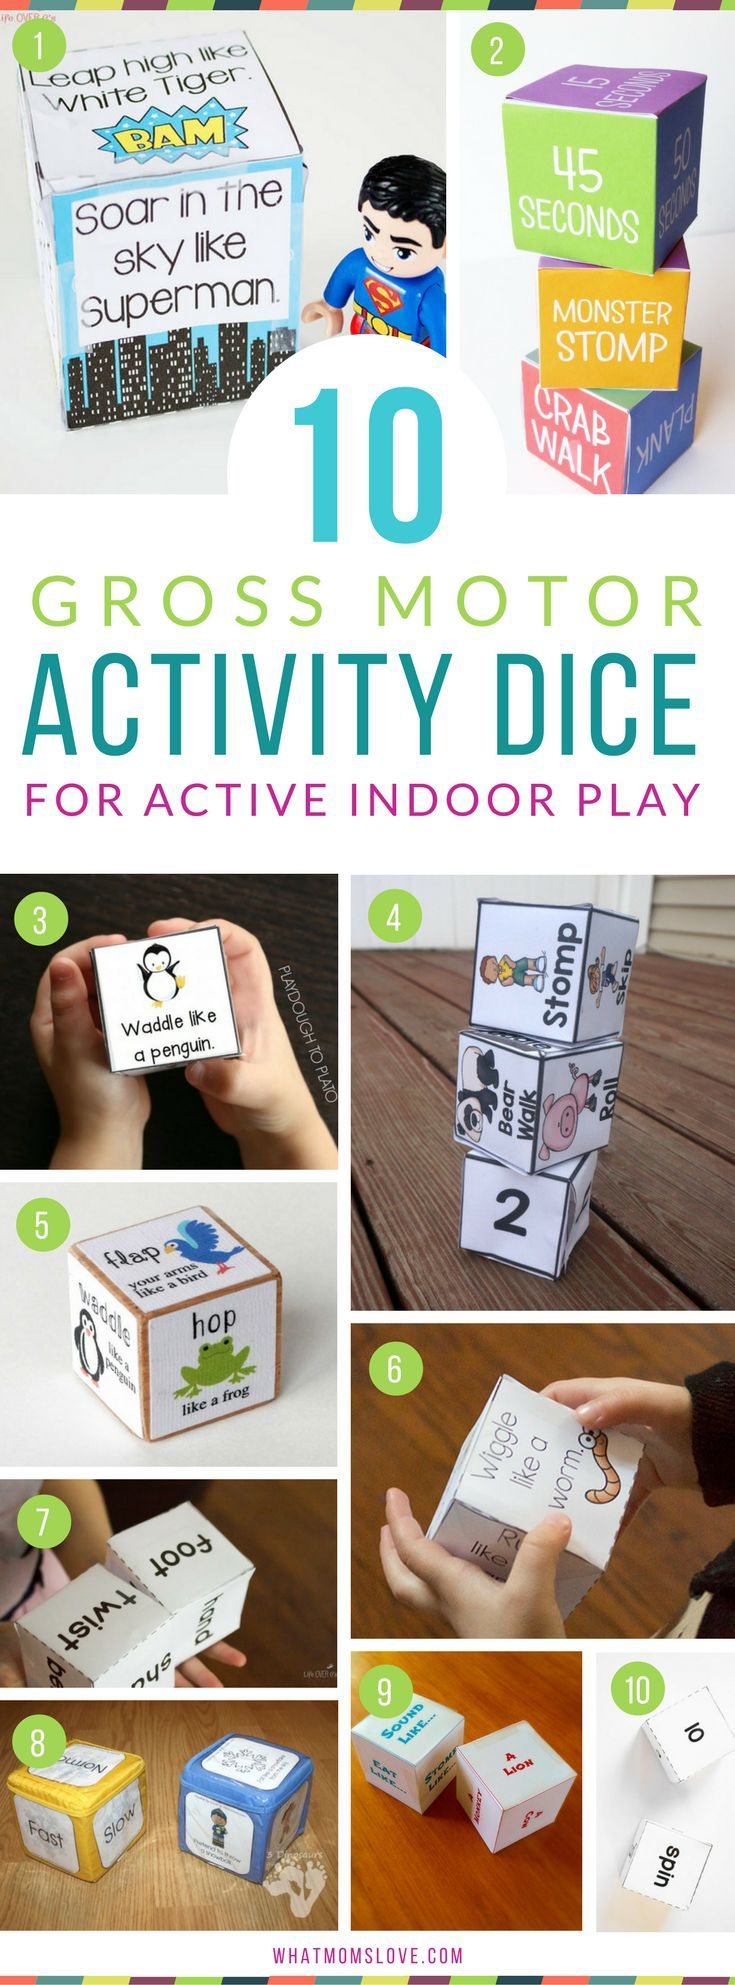 Gross Motor Activity Dice For Kids | Free Printable Movement Dice perfect for Brain Breaks, Boredom Busters and staying active indoors | Fun and physical game to get energy out inside - for the full list of Active Indoor Games and Activities For Kids see